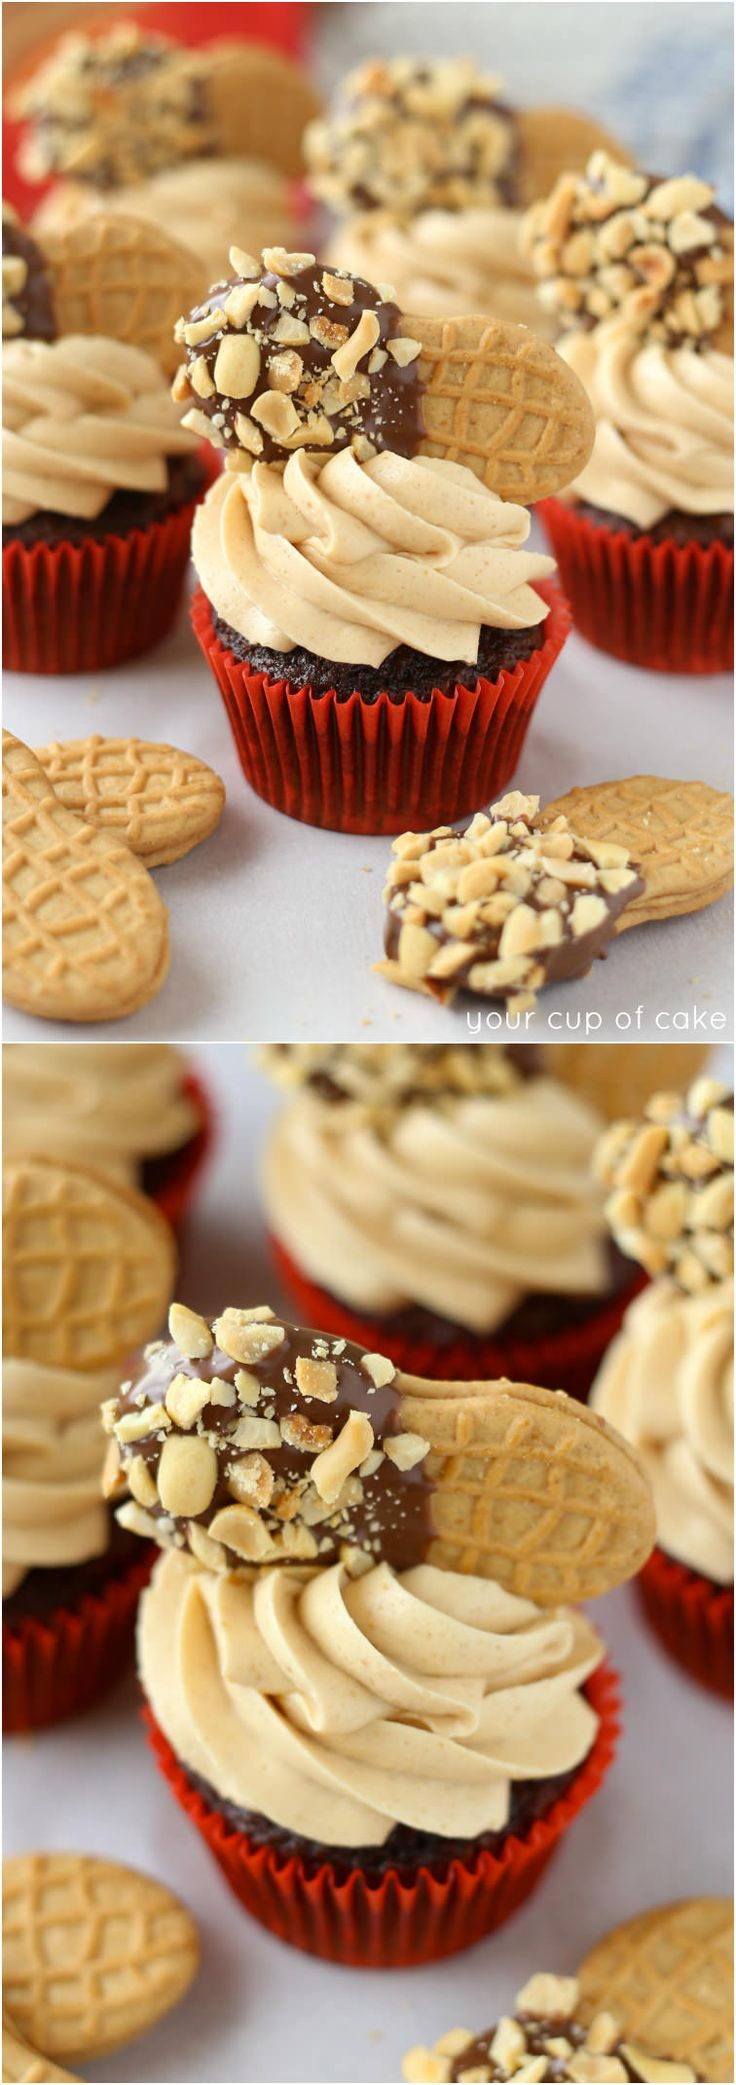 1000 Ideas About Spice Cupcakes On Pinterest Pumpkin Spice Cupcakes - Chocolate nutter butter cupcakes